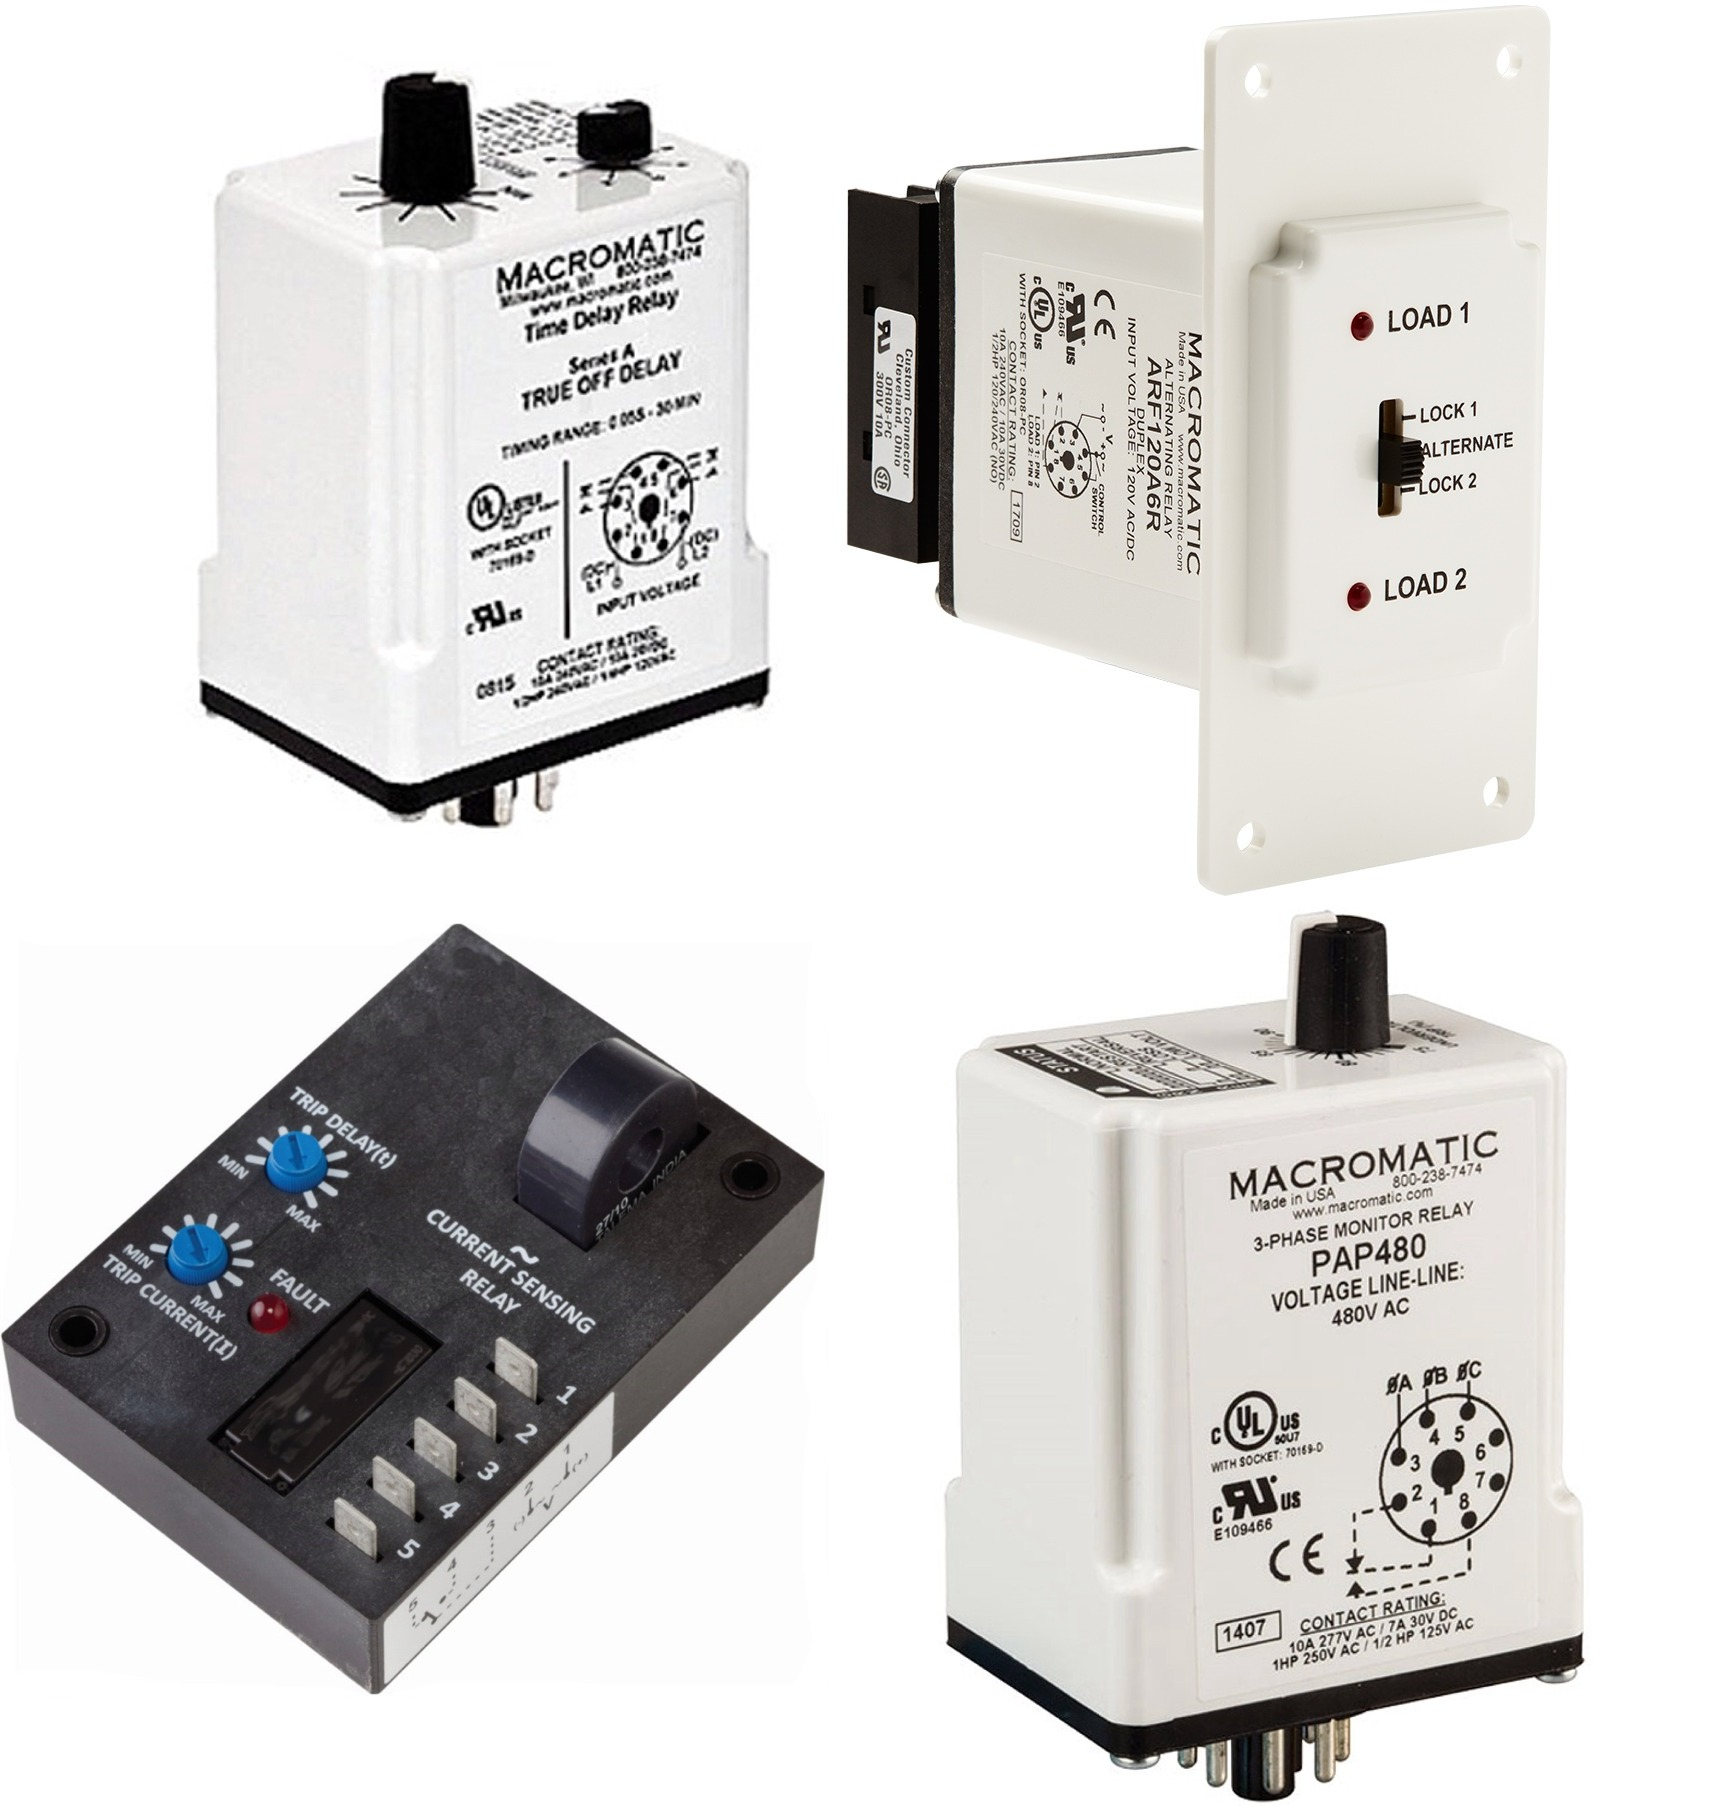 Introduction to Macromatic Relays on